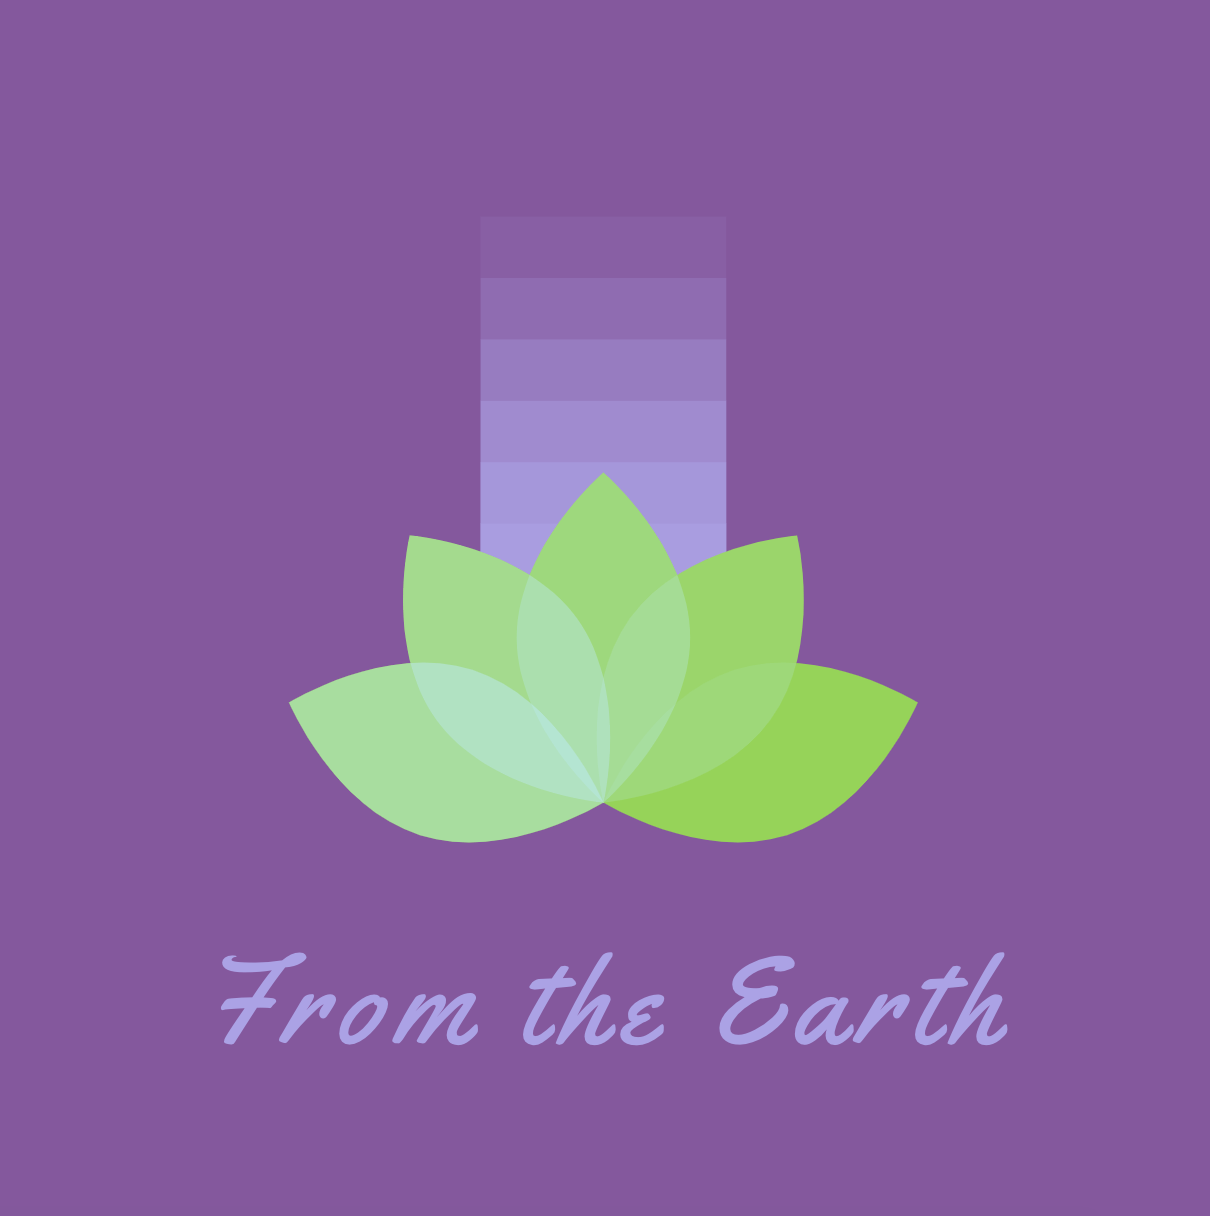 Sample logo made with Hatchful free logo maker - From the Earth